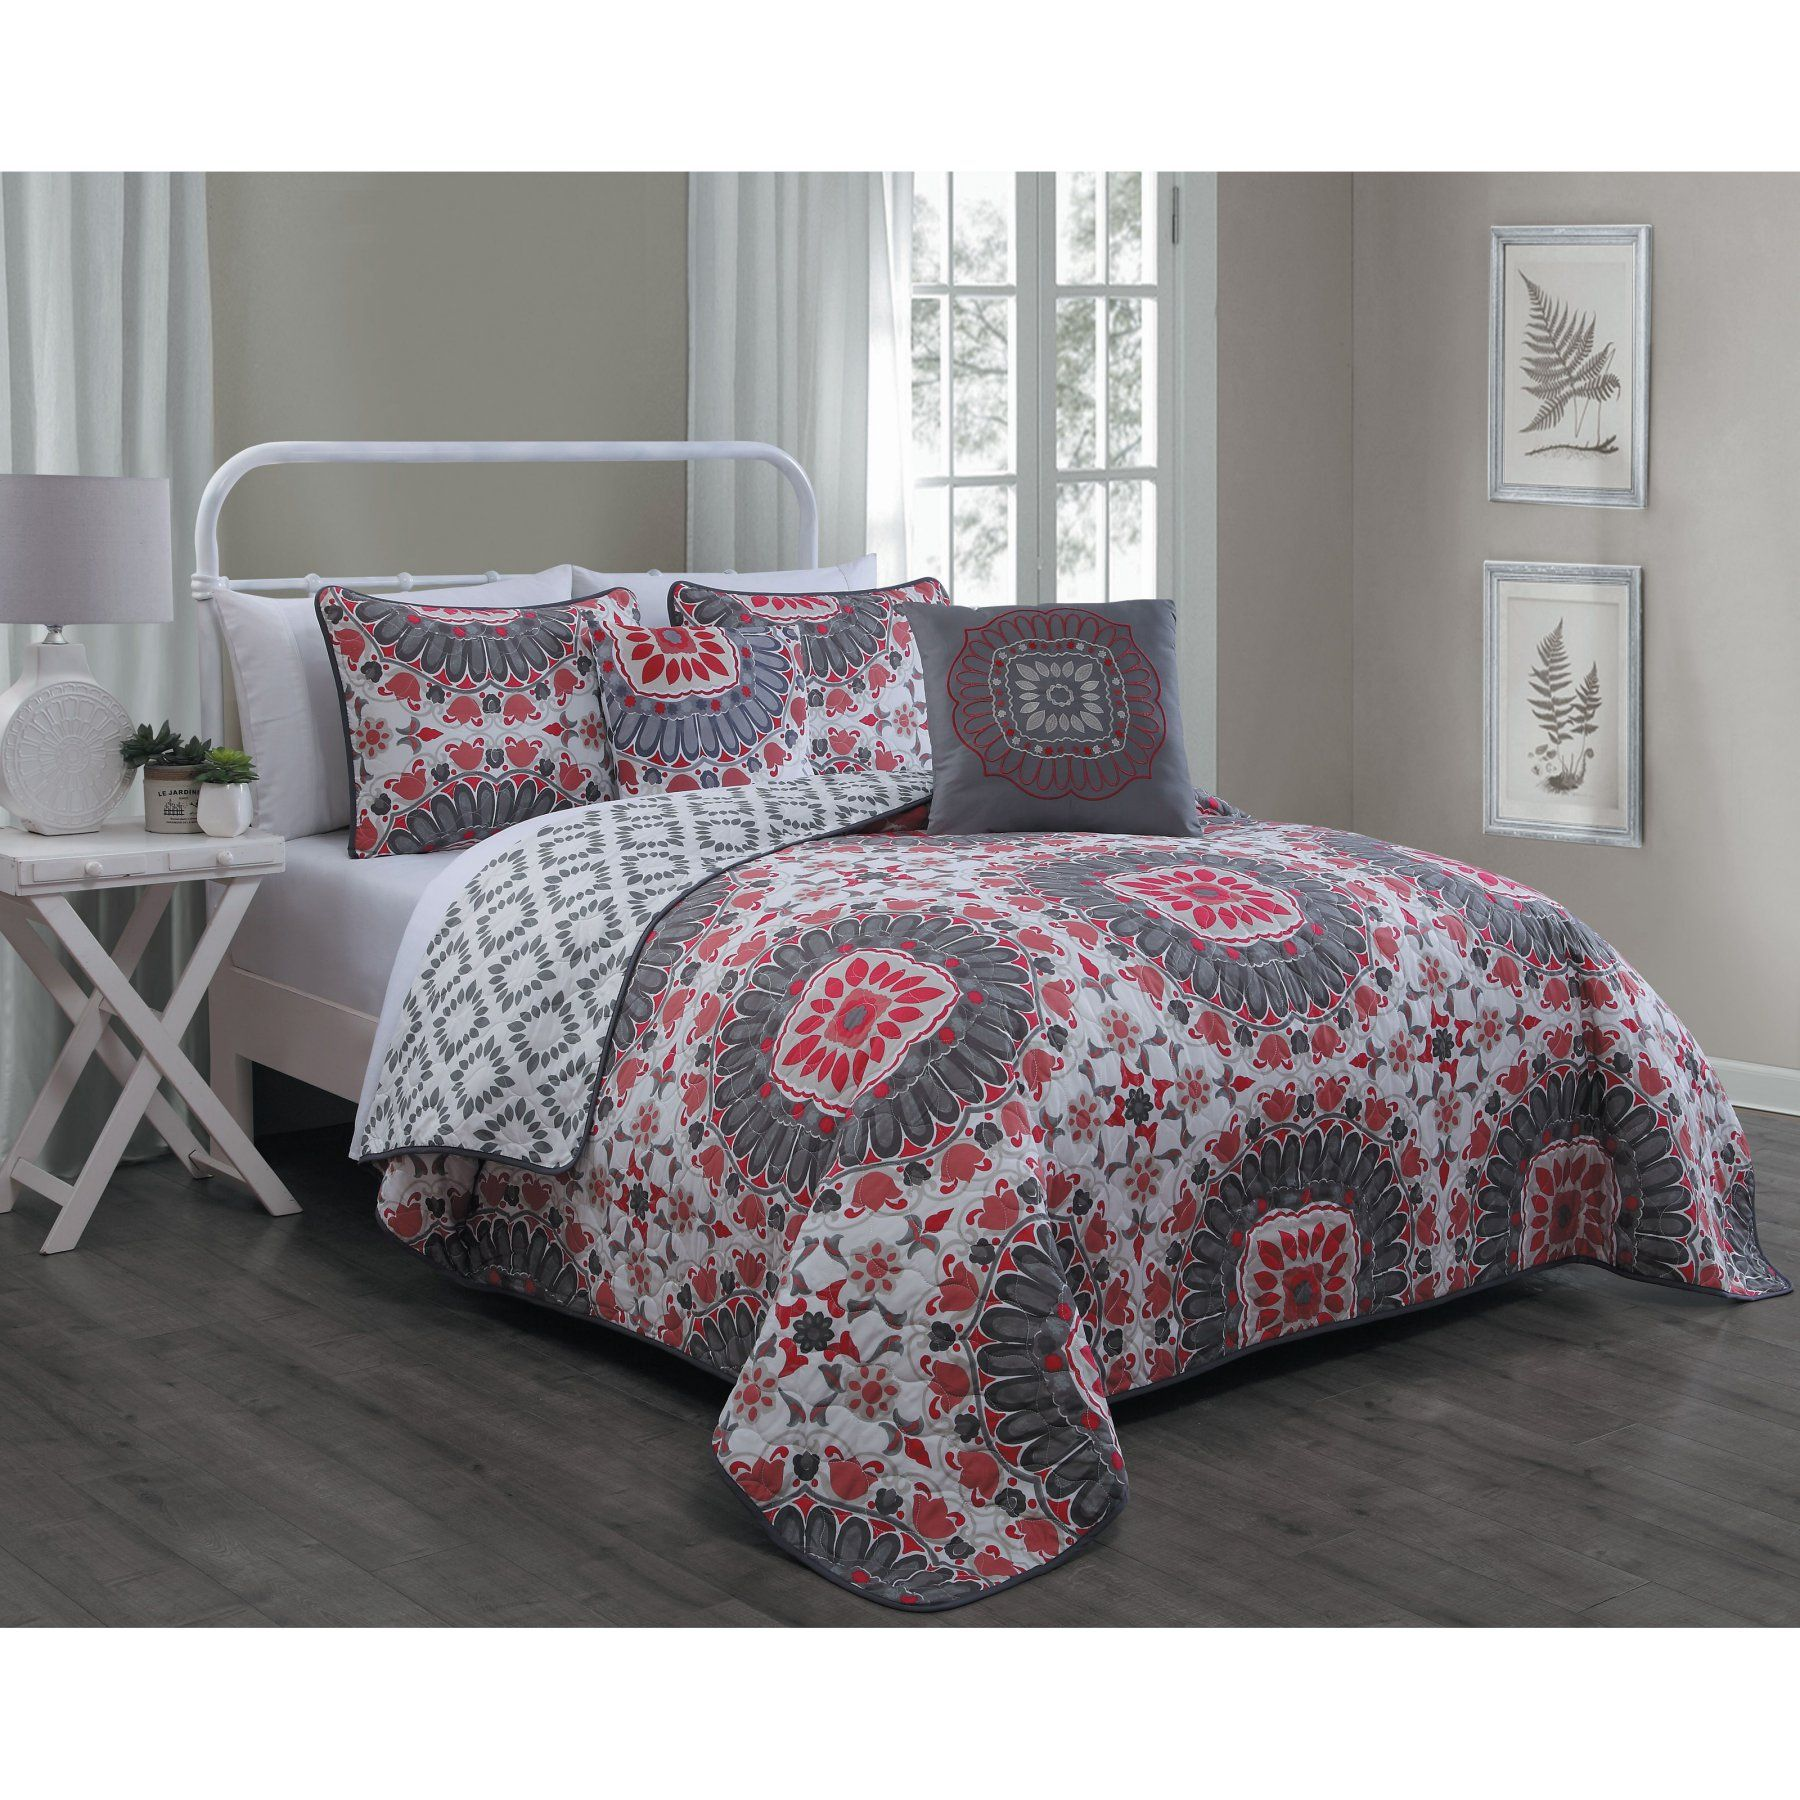 Malta 5 Piece Quilt Set By Avondale Manor  Mal5Qtquenghrd